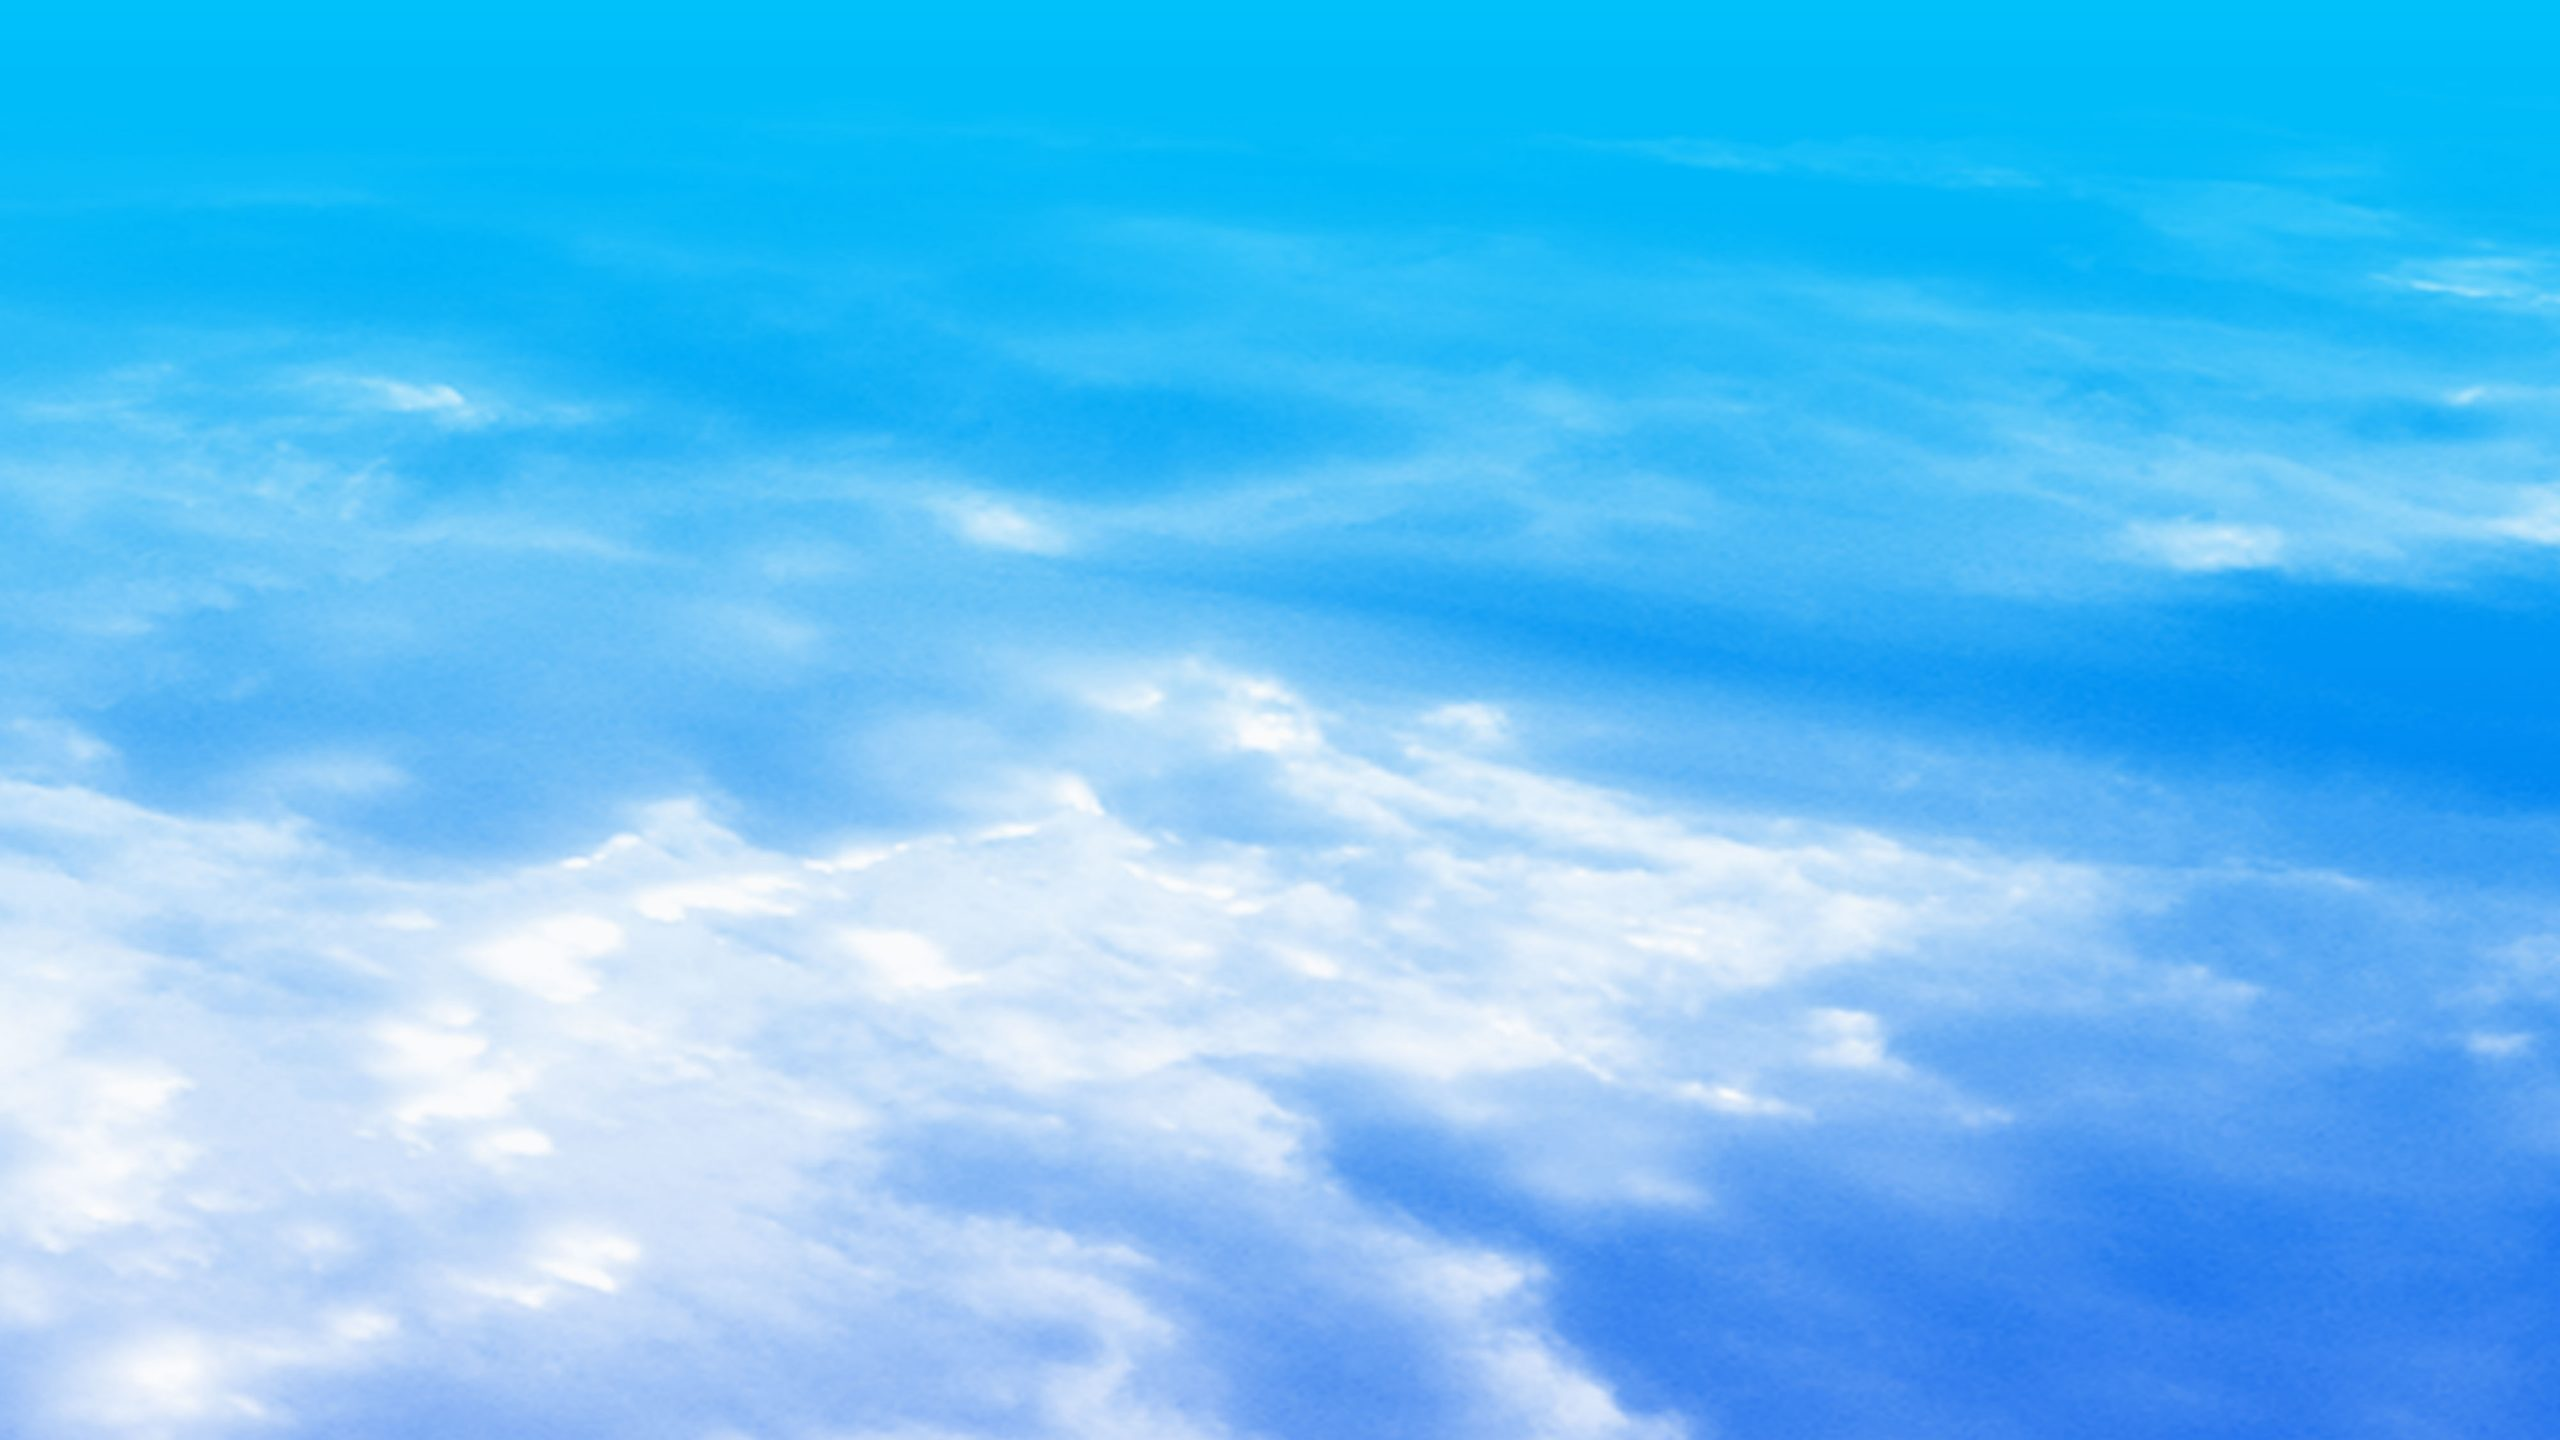 Sky and clouds wallpaper